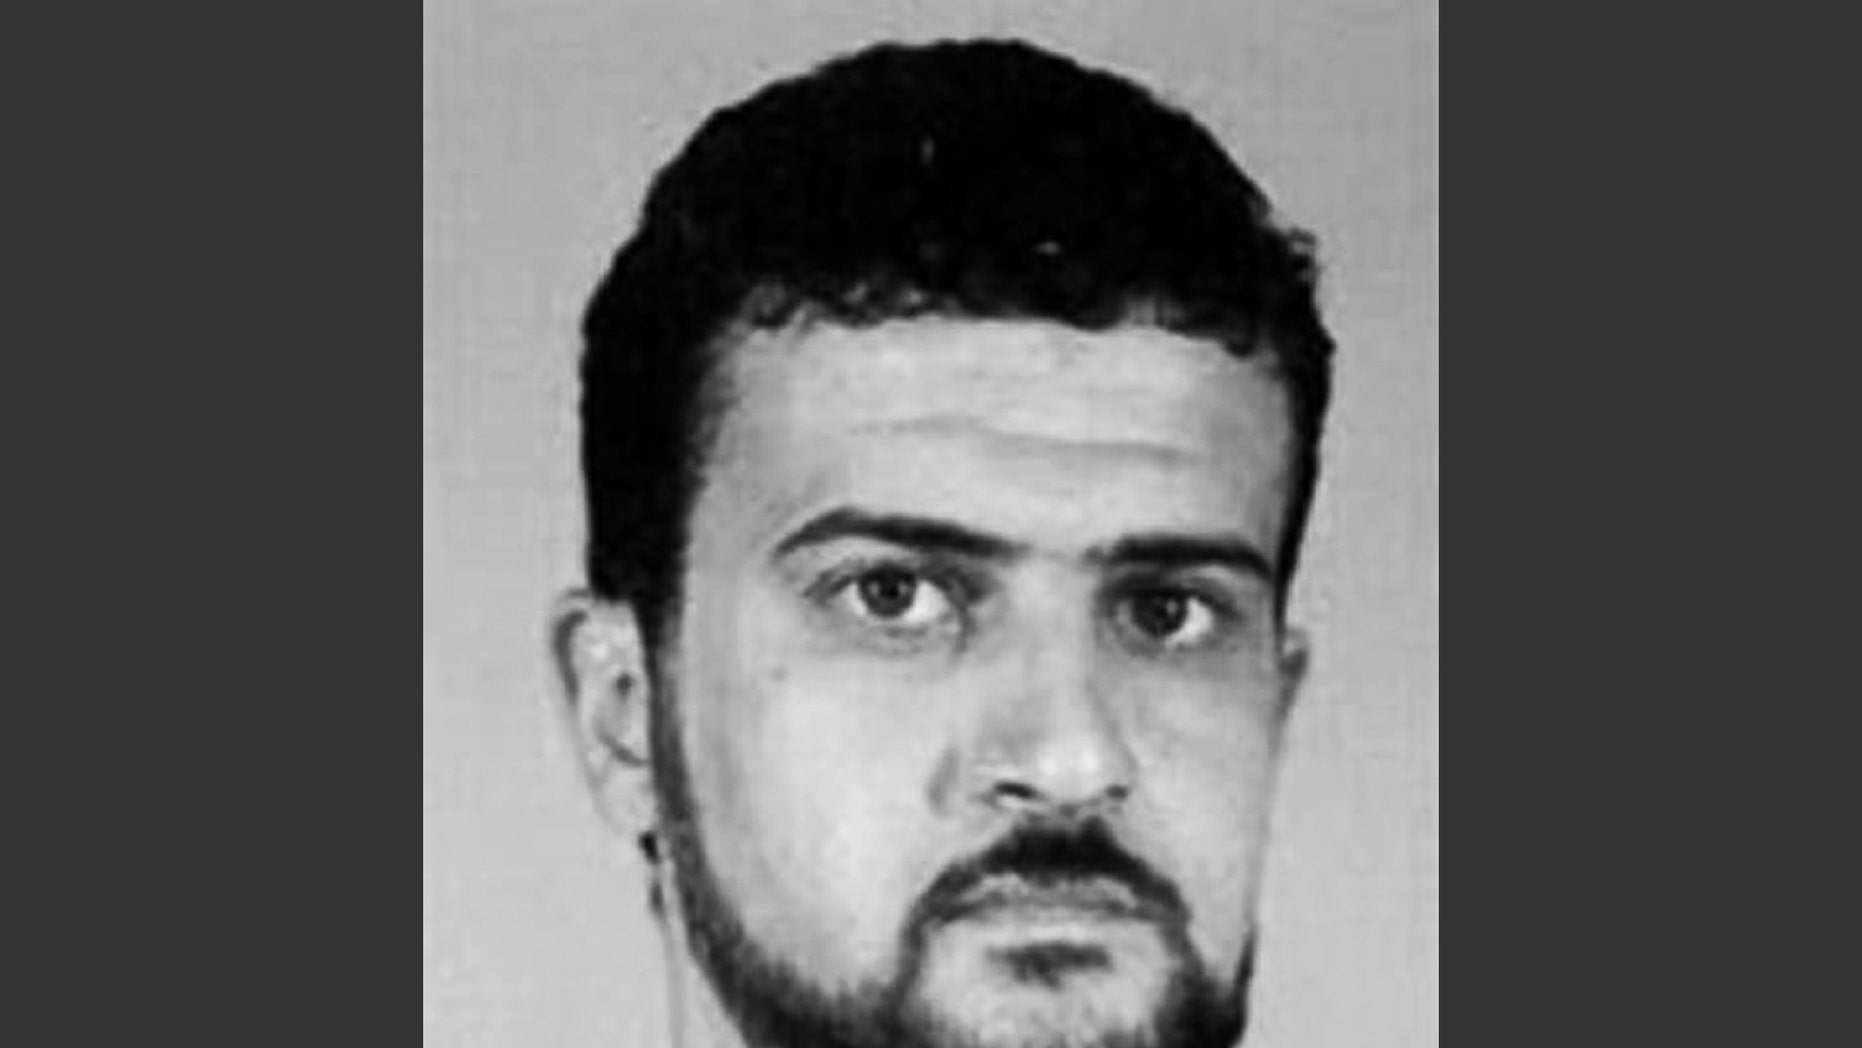 "FILE - This file image from the FBI website shows Abu Anas al-Libi, an al-Qaeda leader connected to the 1998 embassy bombings in eastern Africa and wanted by the United States for more than a decade. Al-Libi was captured in a raid Saturday, Oct. 5, 2013, and is being held aboard the USS San Antonio, a warship mainly used to transport troops. Instead of sending suspected terrorists to Guantanamo Bay or secret CIA ""black"" sites for interrogation, the Obama administration is questioning them aboard U.S. naval vessels. (AP Photo/FBI, File)"